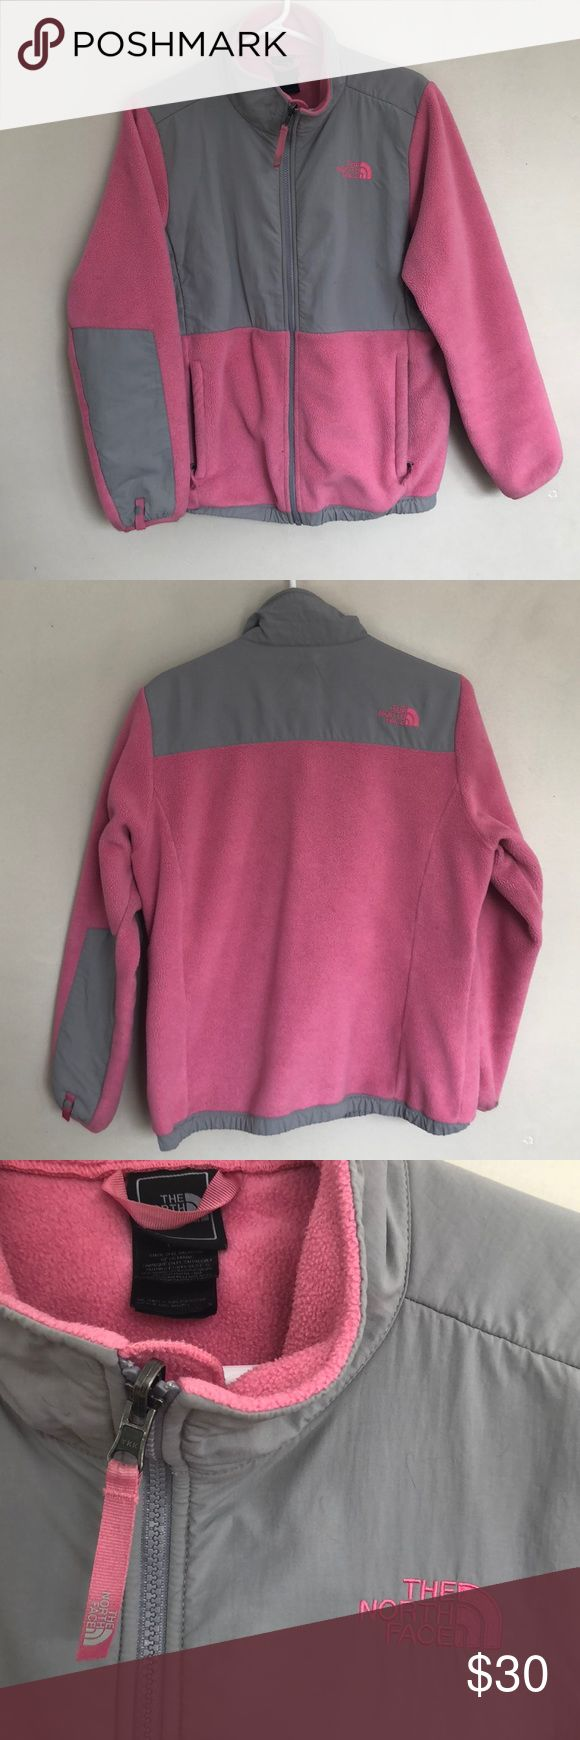 Kids North Face Jacket Gently used girls north face jacket The North Face Jackets & Coats